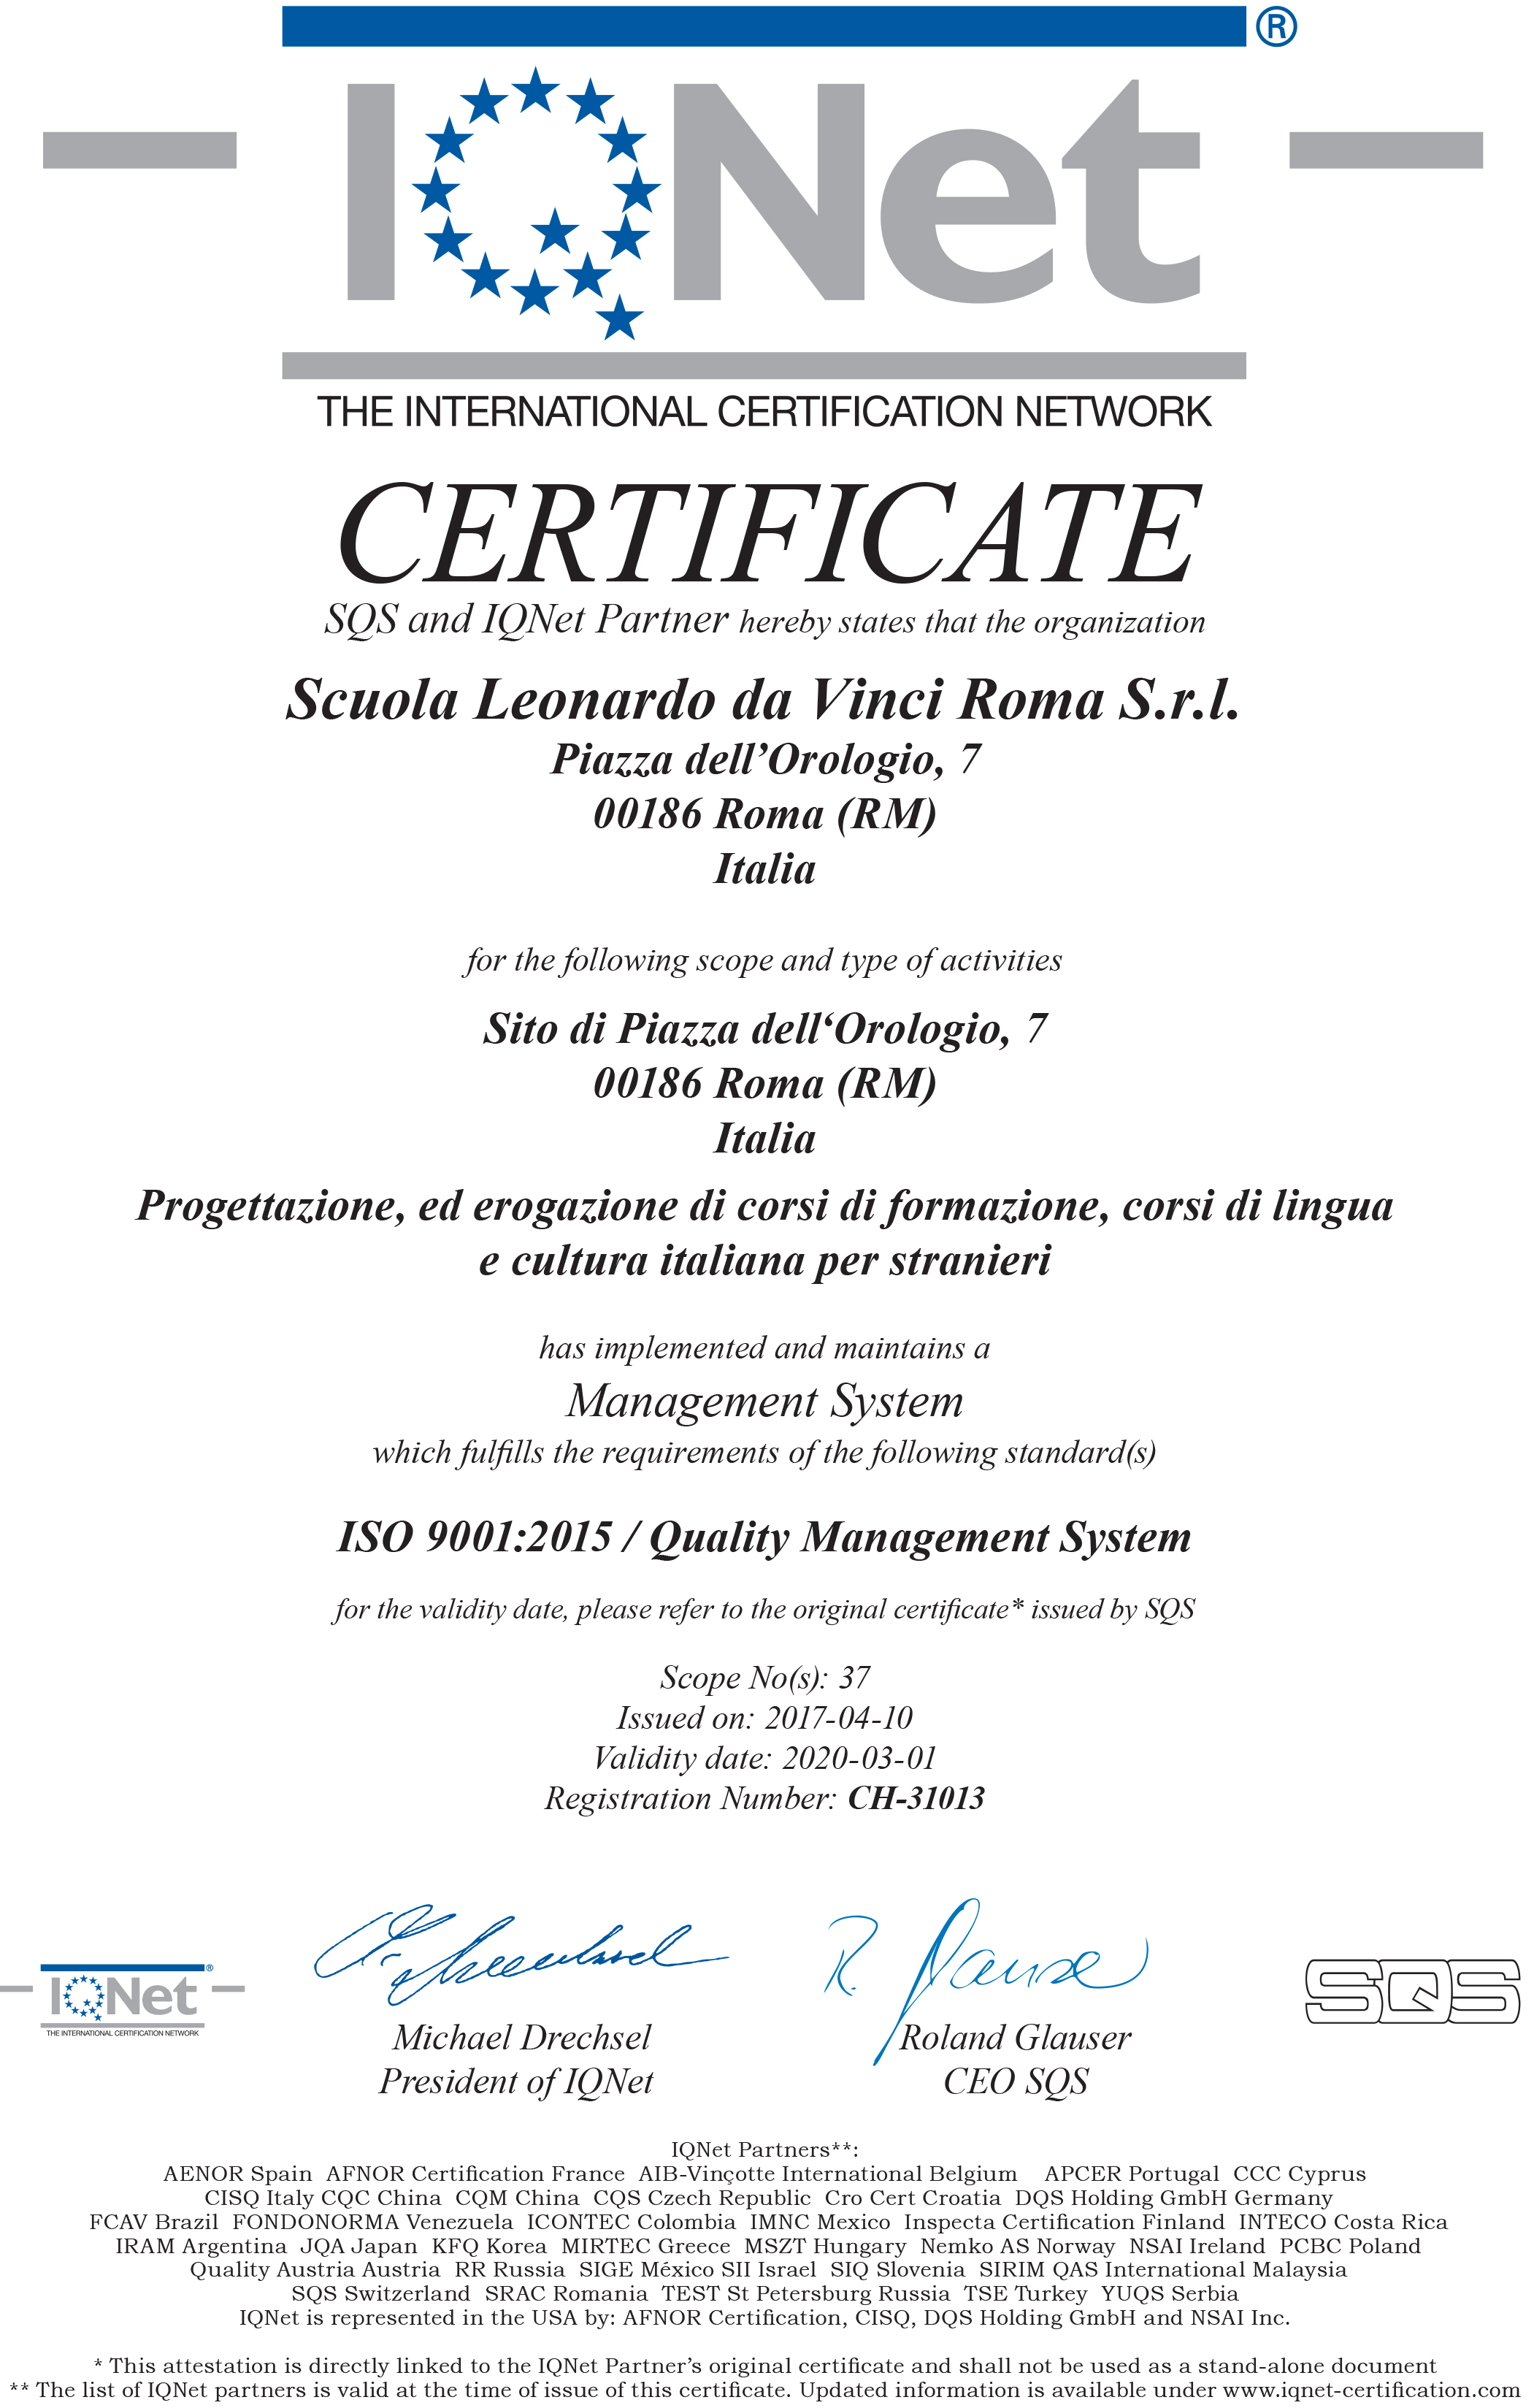 Our Italian school in Rome is certified to meet ISO 9001:2008, the internationally recognized standard for quality management systems